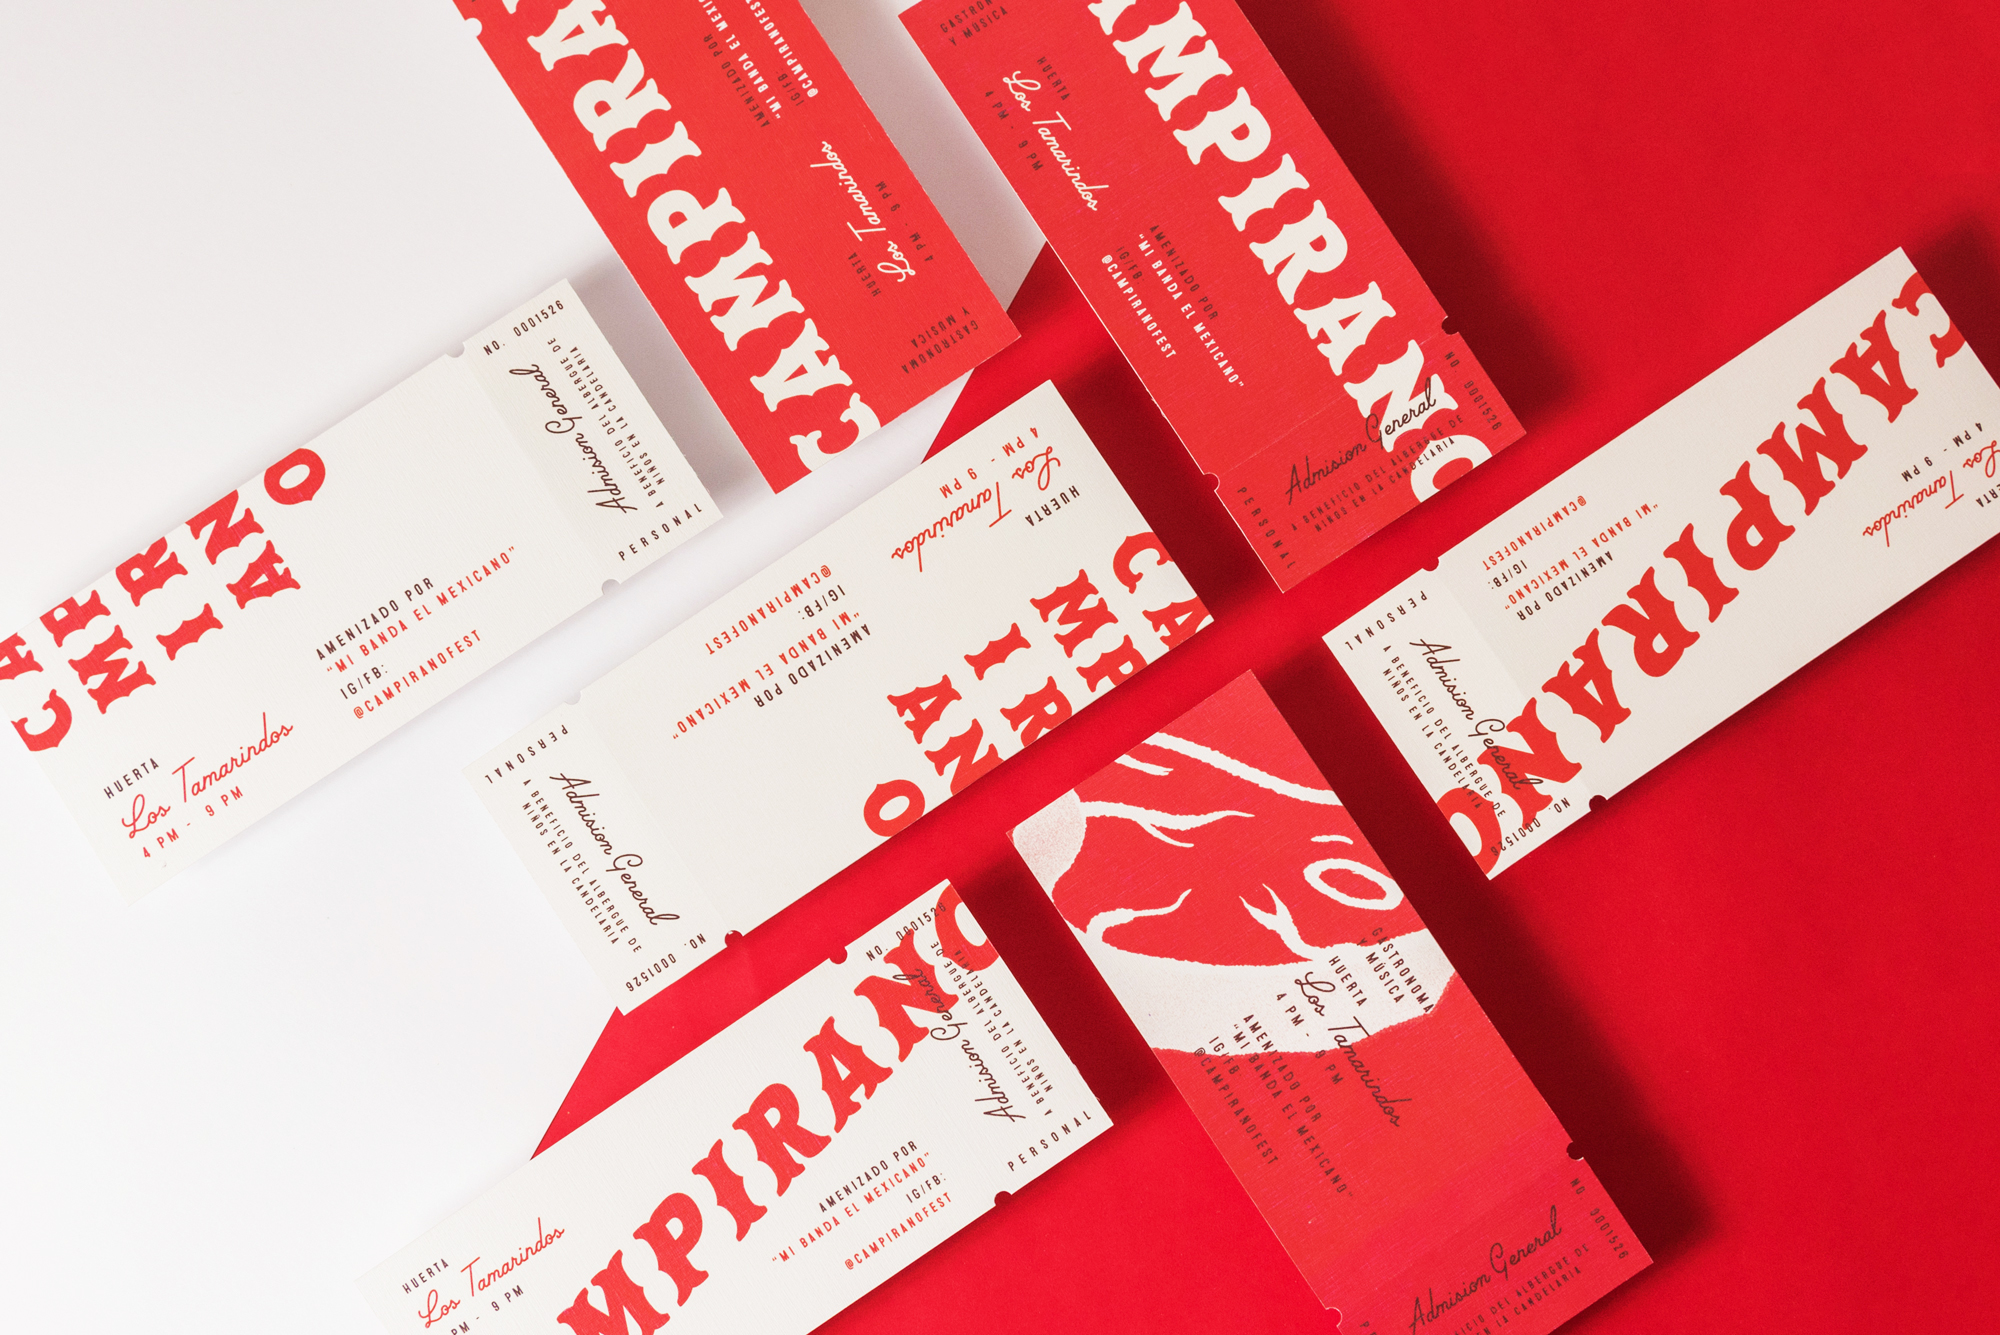 Branding and Art Direction - Graphic Design